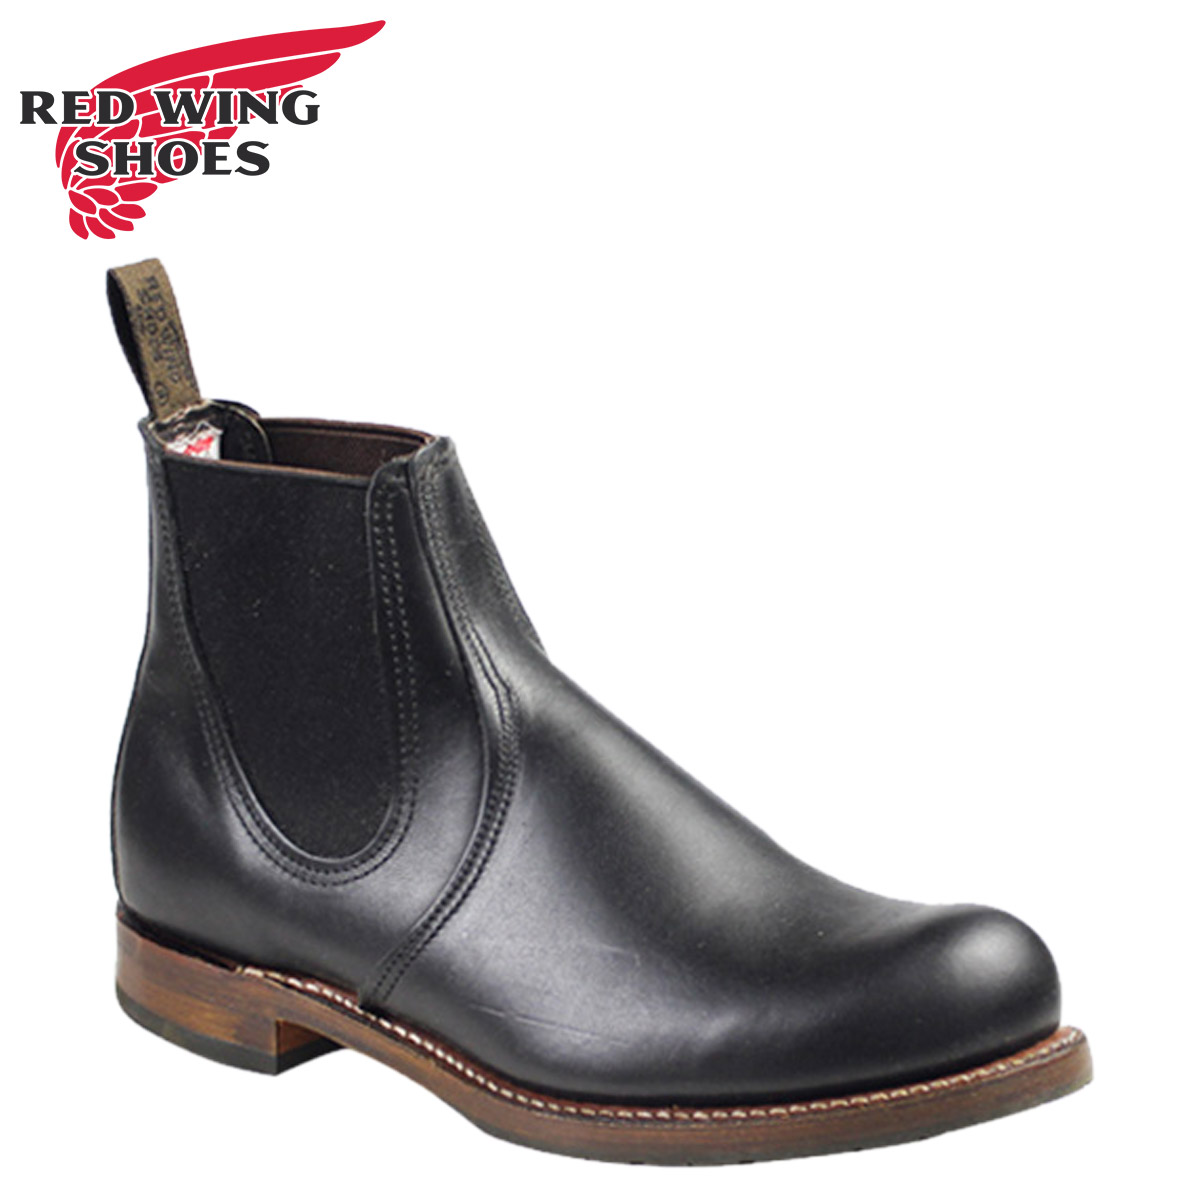 01546430d9909c Whats Up Sports Red Wing Beckman Couleur Chelsea. Men039s chelsea boots  british style fashion ankle black brown men ...